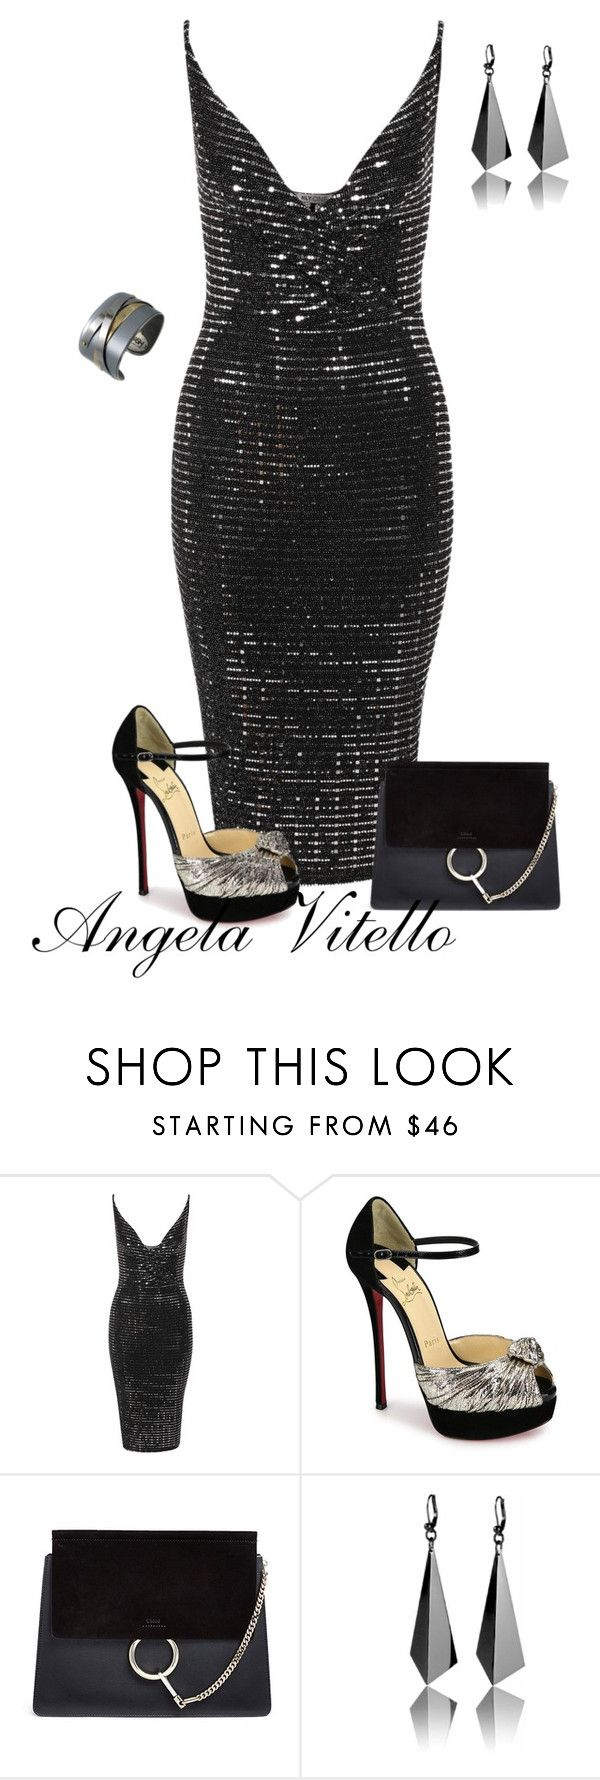 """Untitled #854"" by angela-vitello on Polyvore featuring Christian Louboutin, Chloé and Porsche"